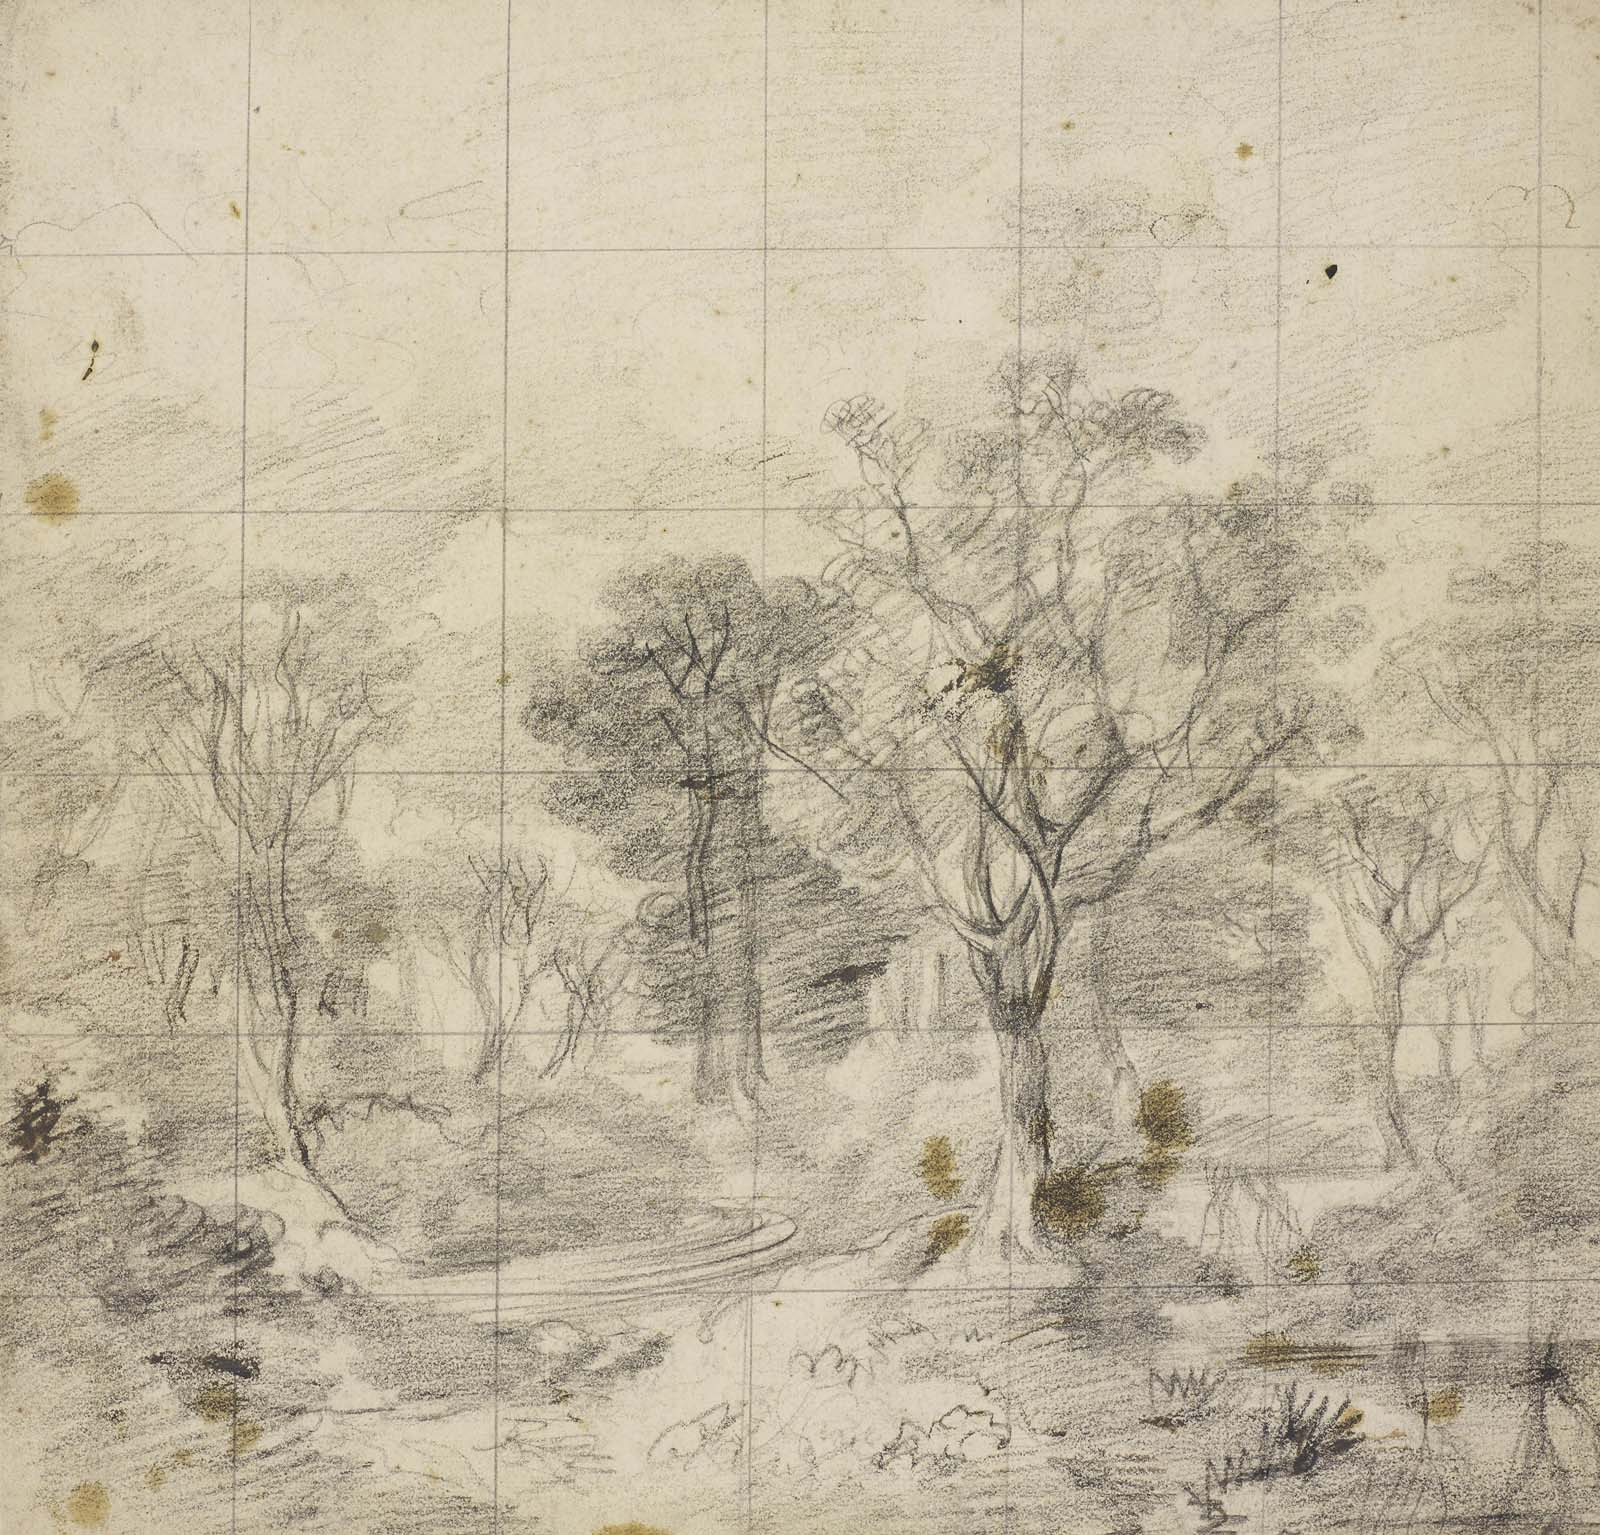 sketch of trees and woodland with a series of squares overlaying the top